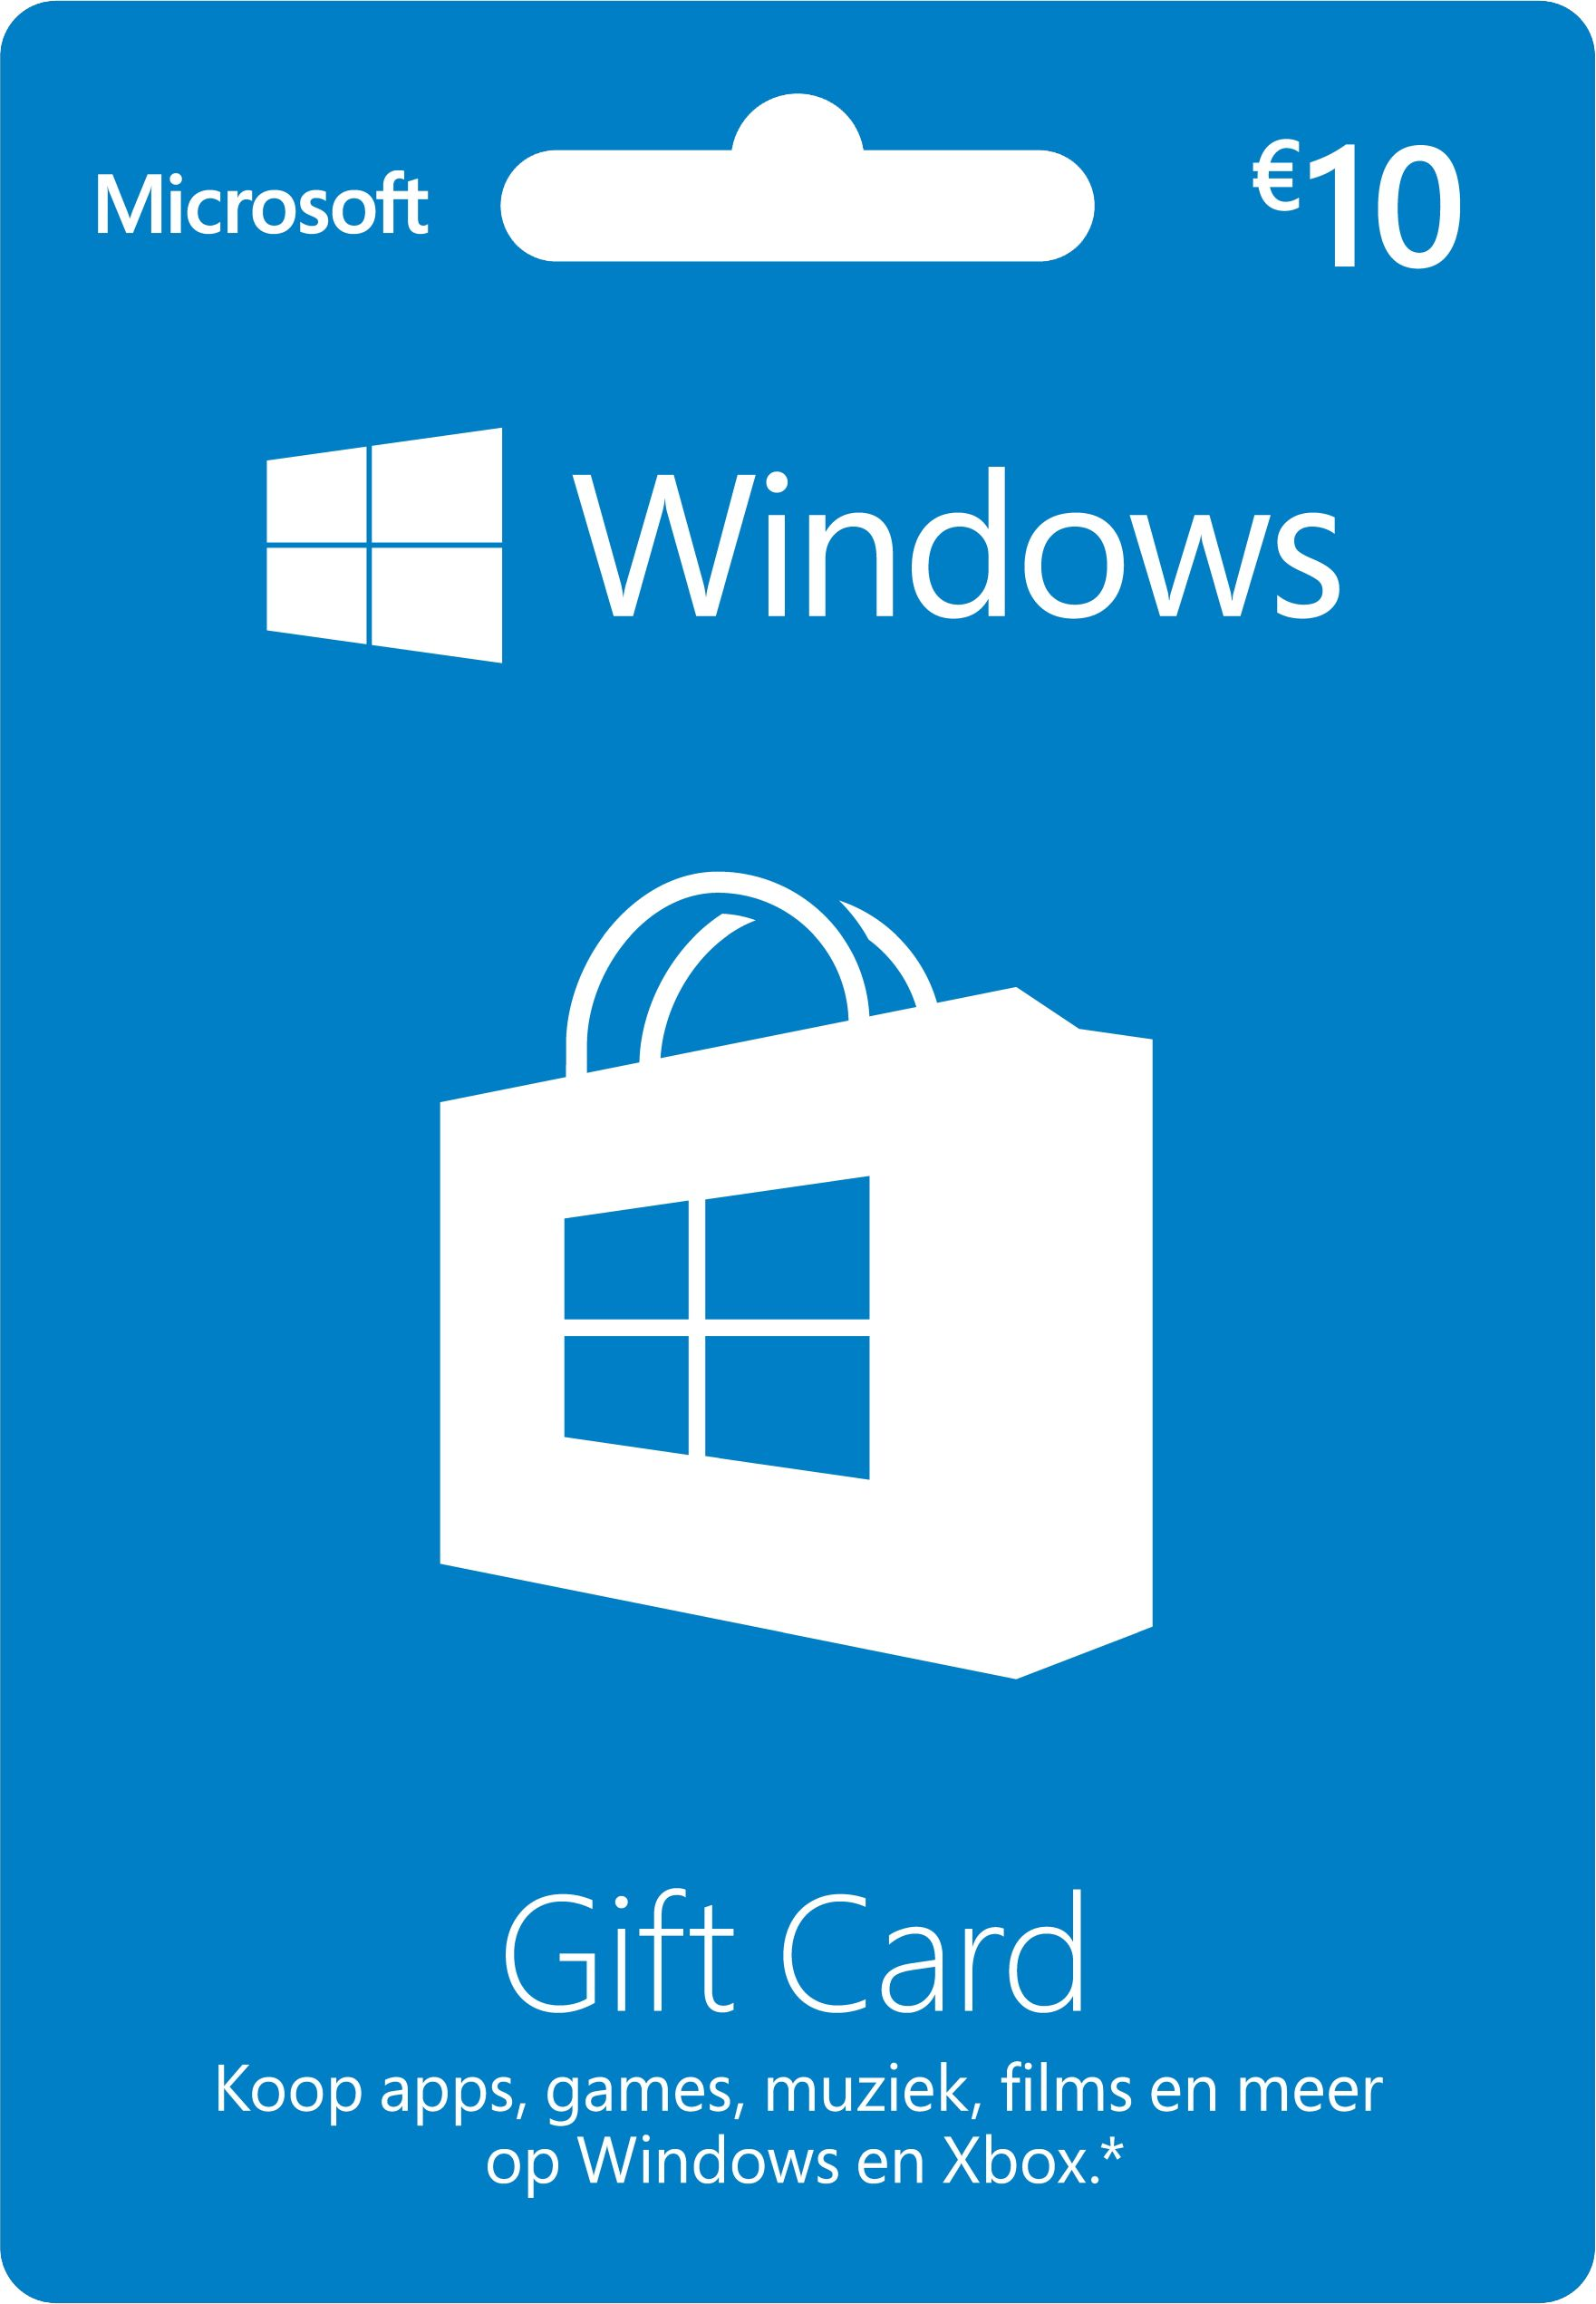 Windows Gift Card 10 euro